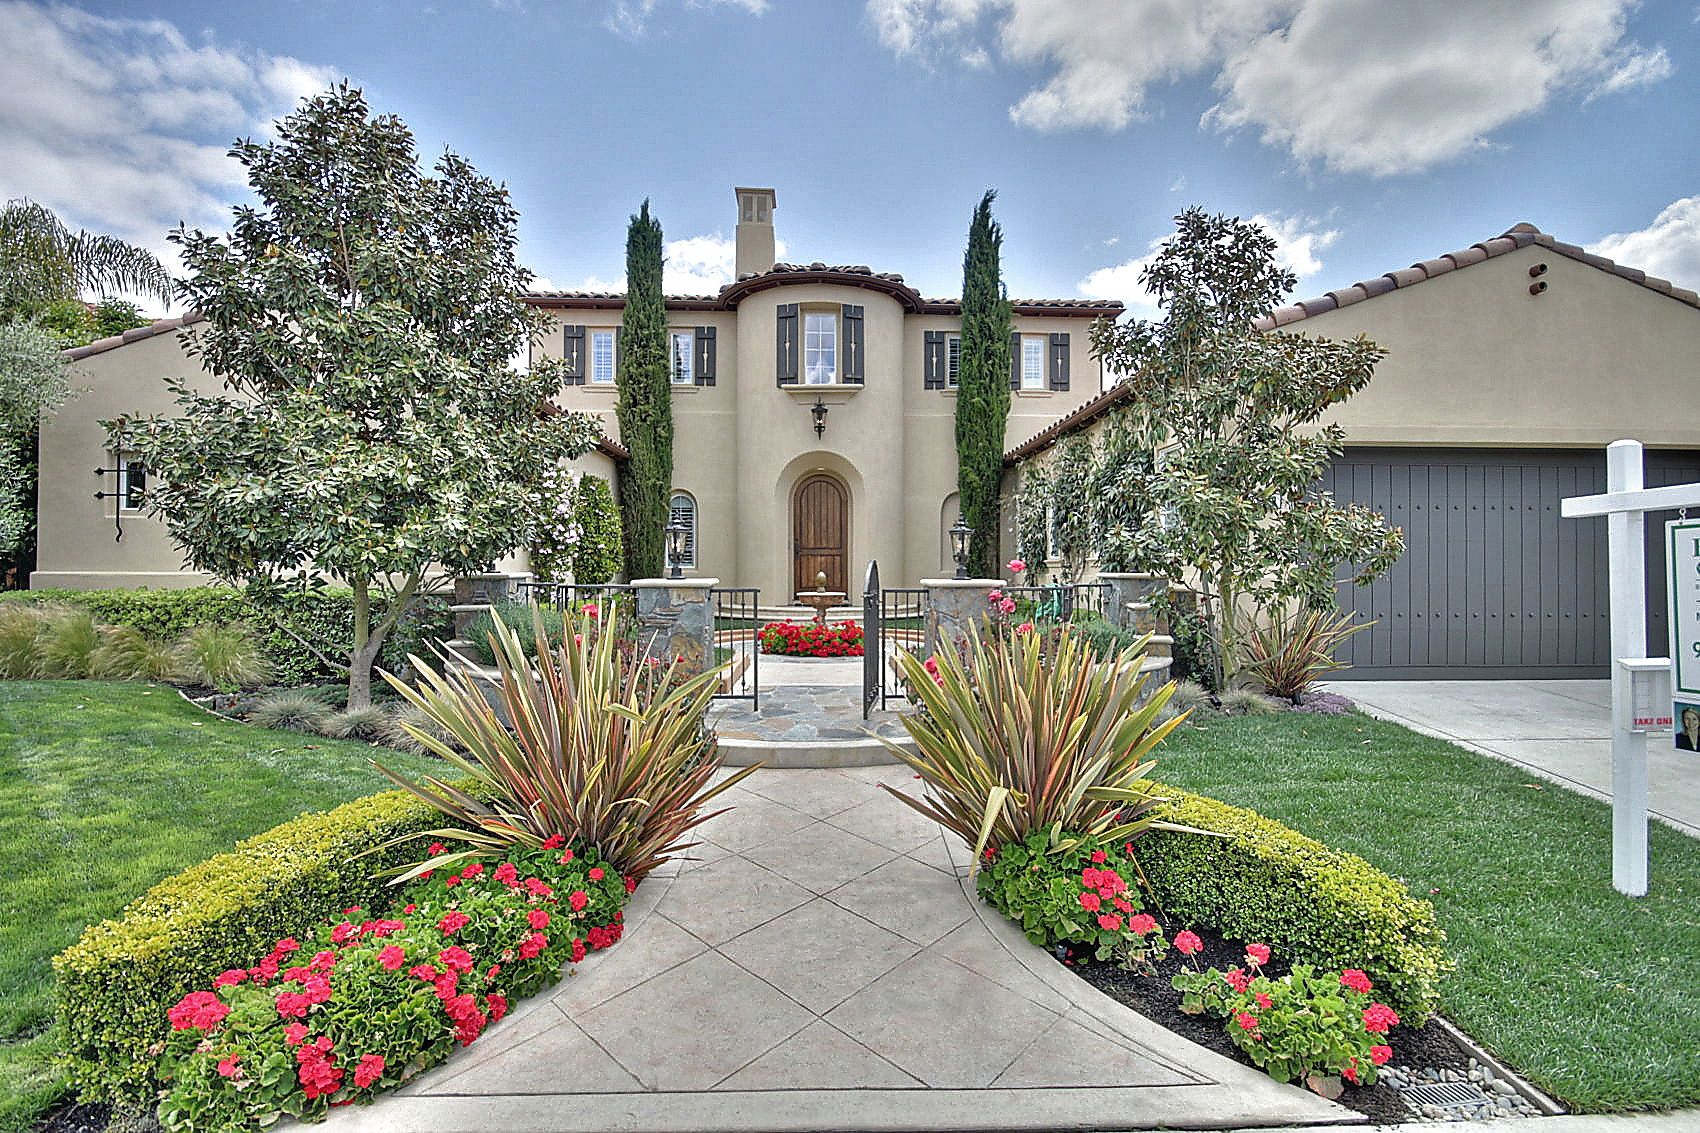 Luxurious home high end landscape italian cypress trees for Cypress house